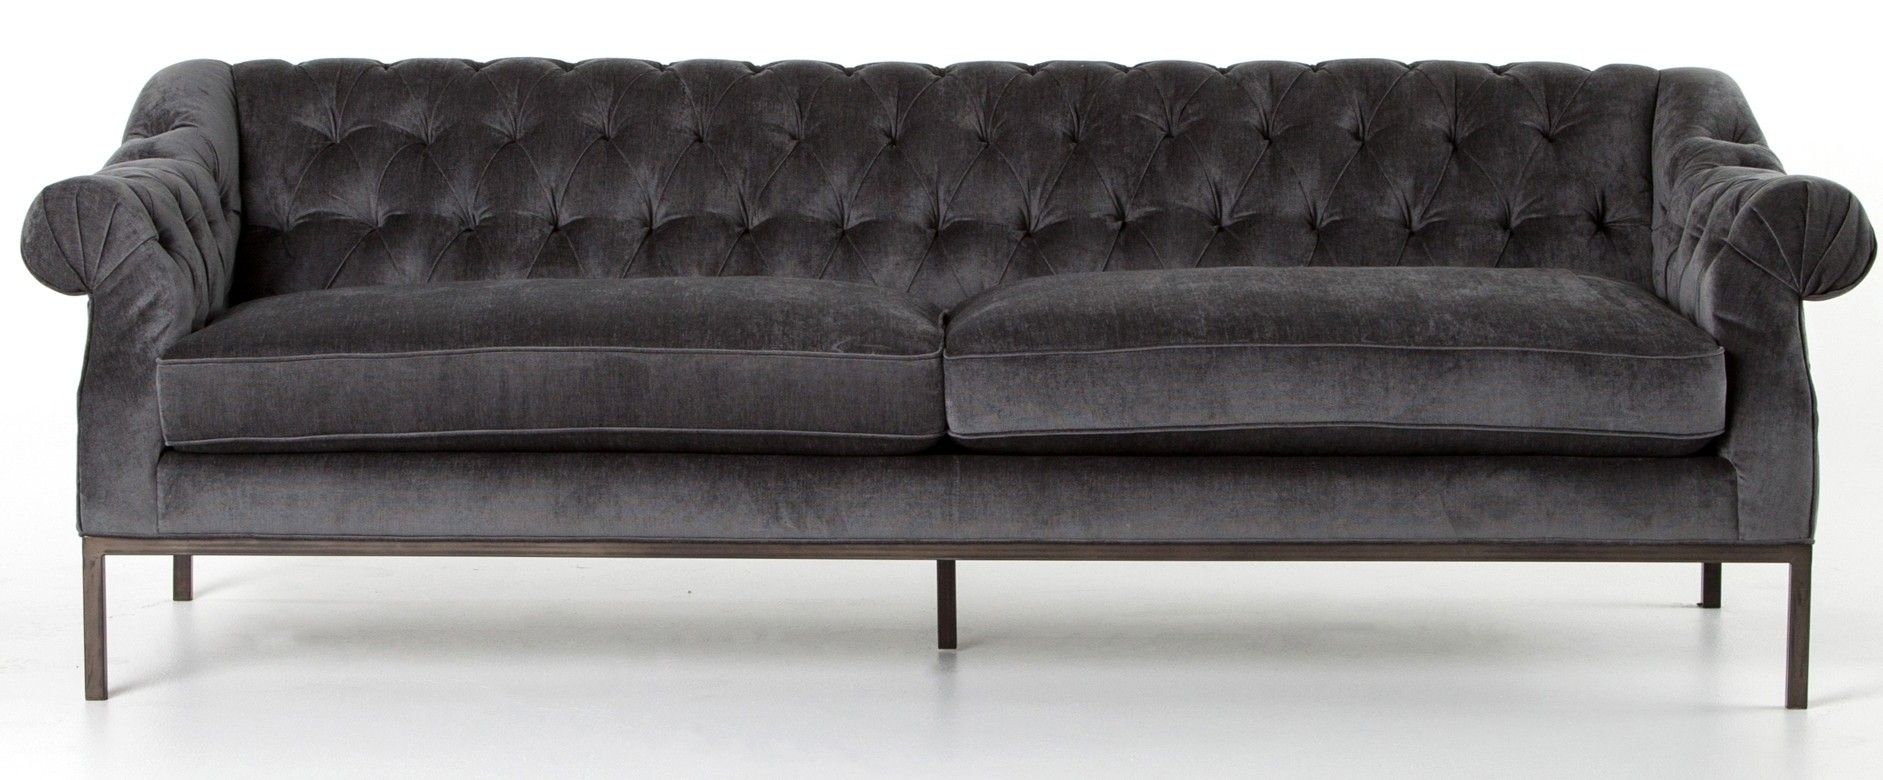 loft charcoal sofa bed leather sectional with sleeper cristine velvet midcentury barbizon pinterest beautiful brings a luxe look to this tufted complete black iron legs and curved arms for traditional meets contemporary style